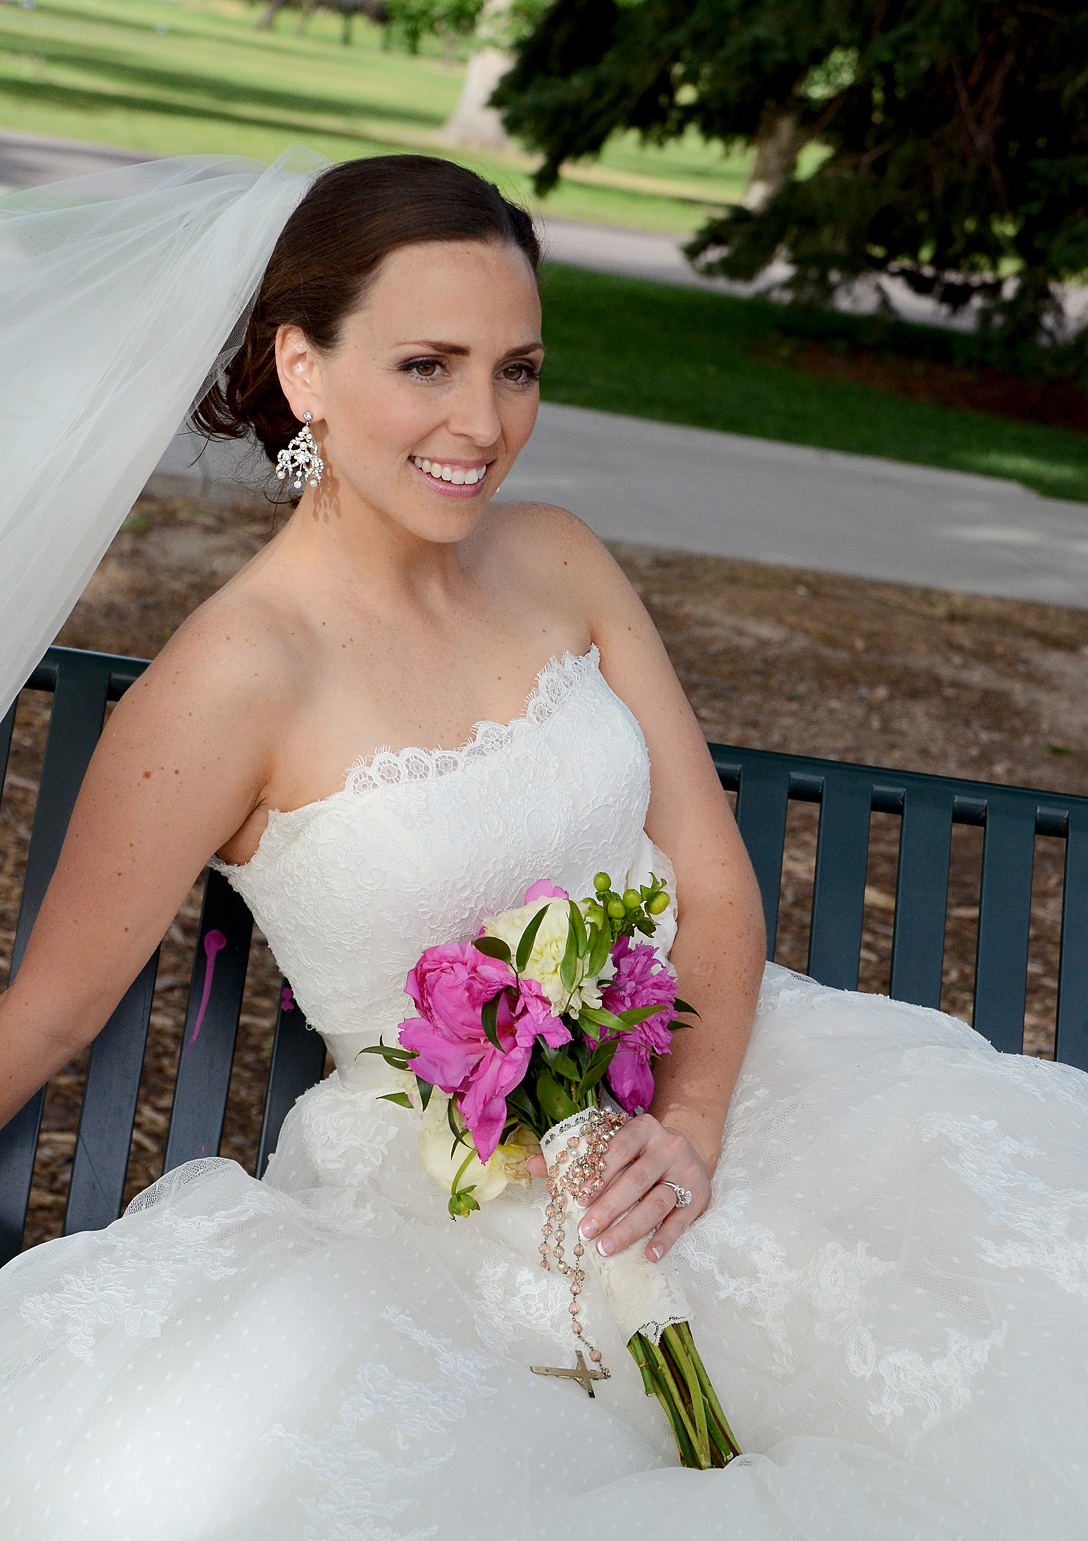 Bridal Portraits at City Park